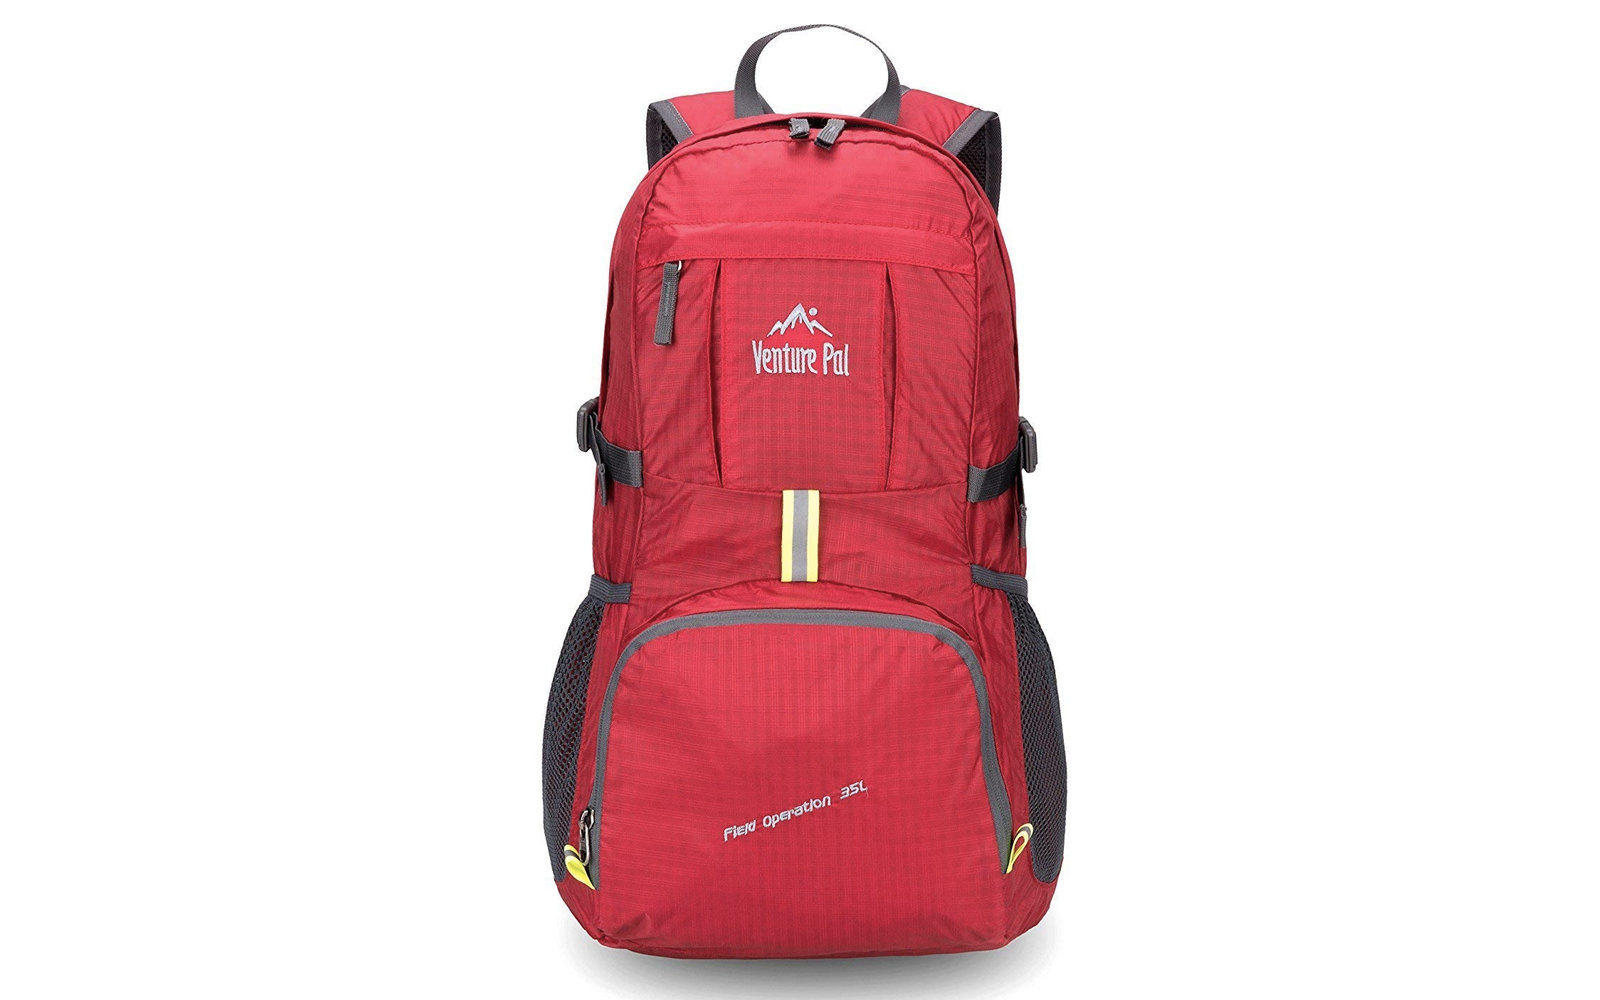 Venture Pal Lightweight Packable Backpack